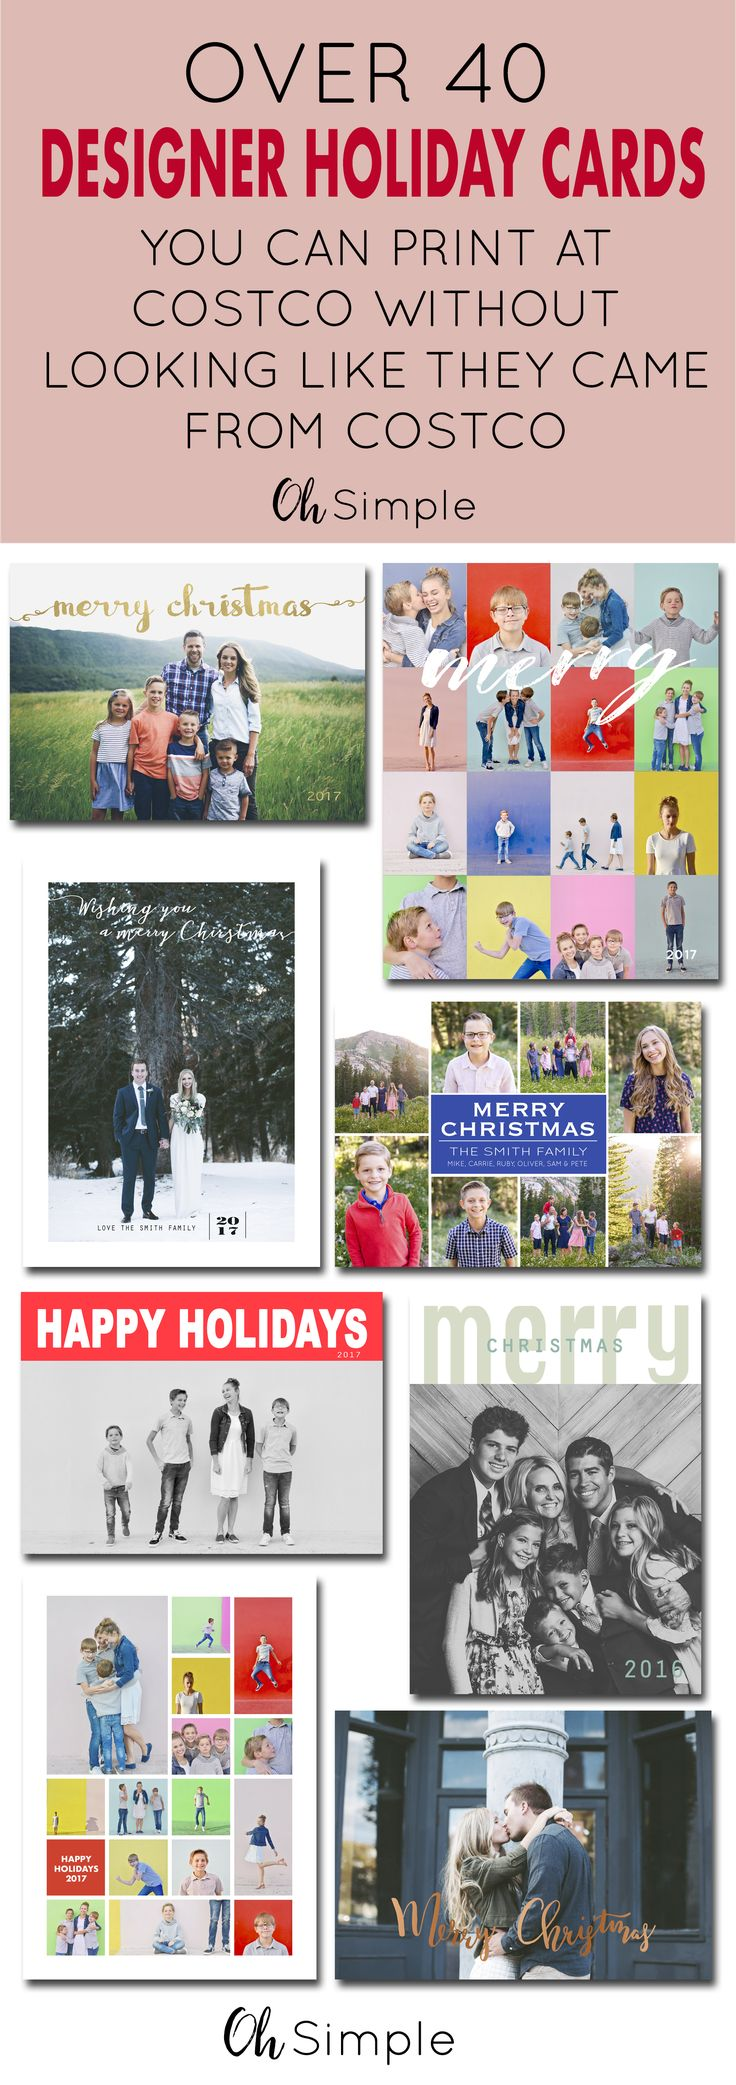 Costco photo cards are the most affordable cards out there. But let's face it, chances are you will end up having the same card as many of your friends and family. Now you can order a custom digital designed card from Oh Simple on Etsy, have them printed at Costco, and have the designer look without the designer price. Just select Costco digital size at check out. Holiday cards | Christmas cards | designer photo cards | customizable cards